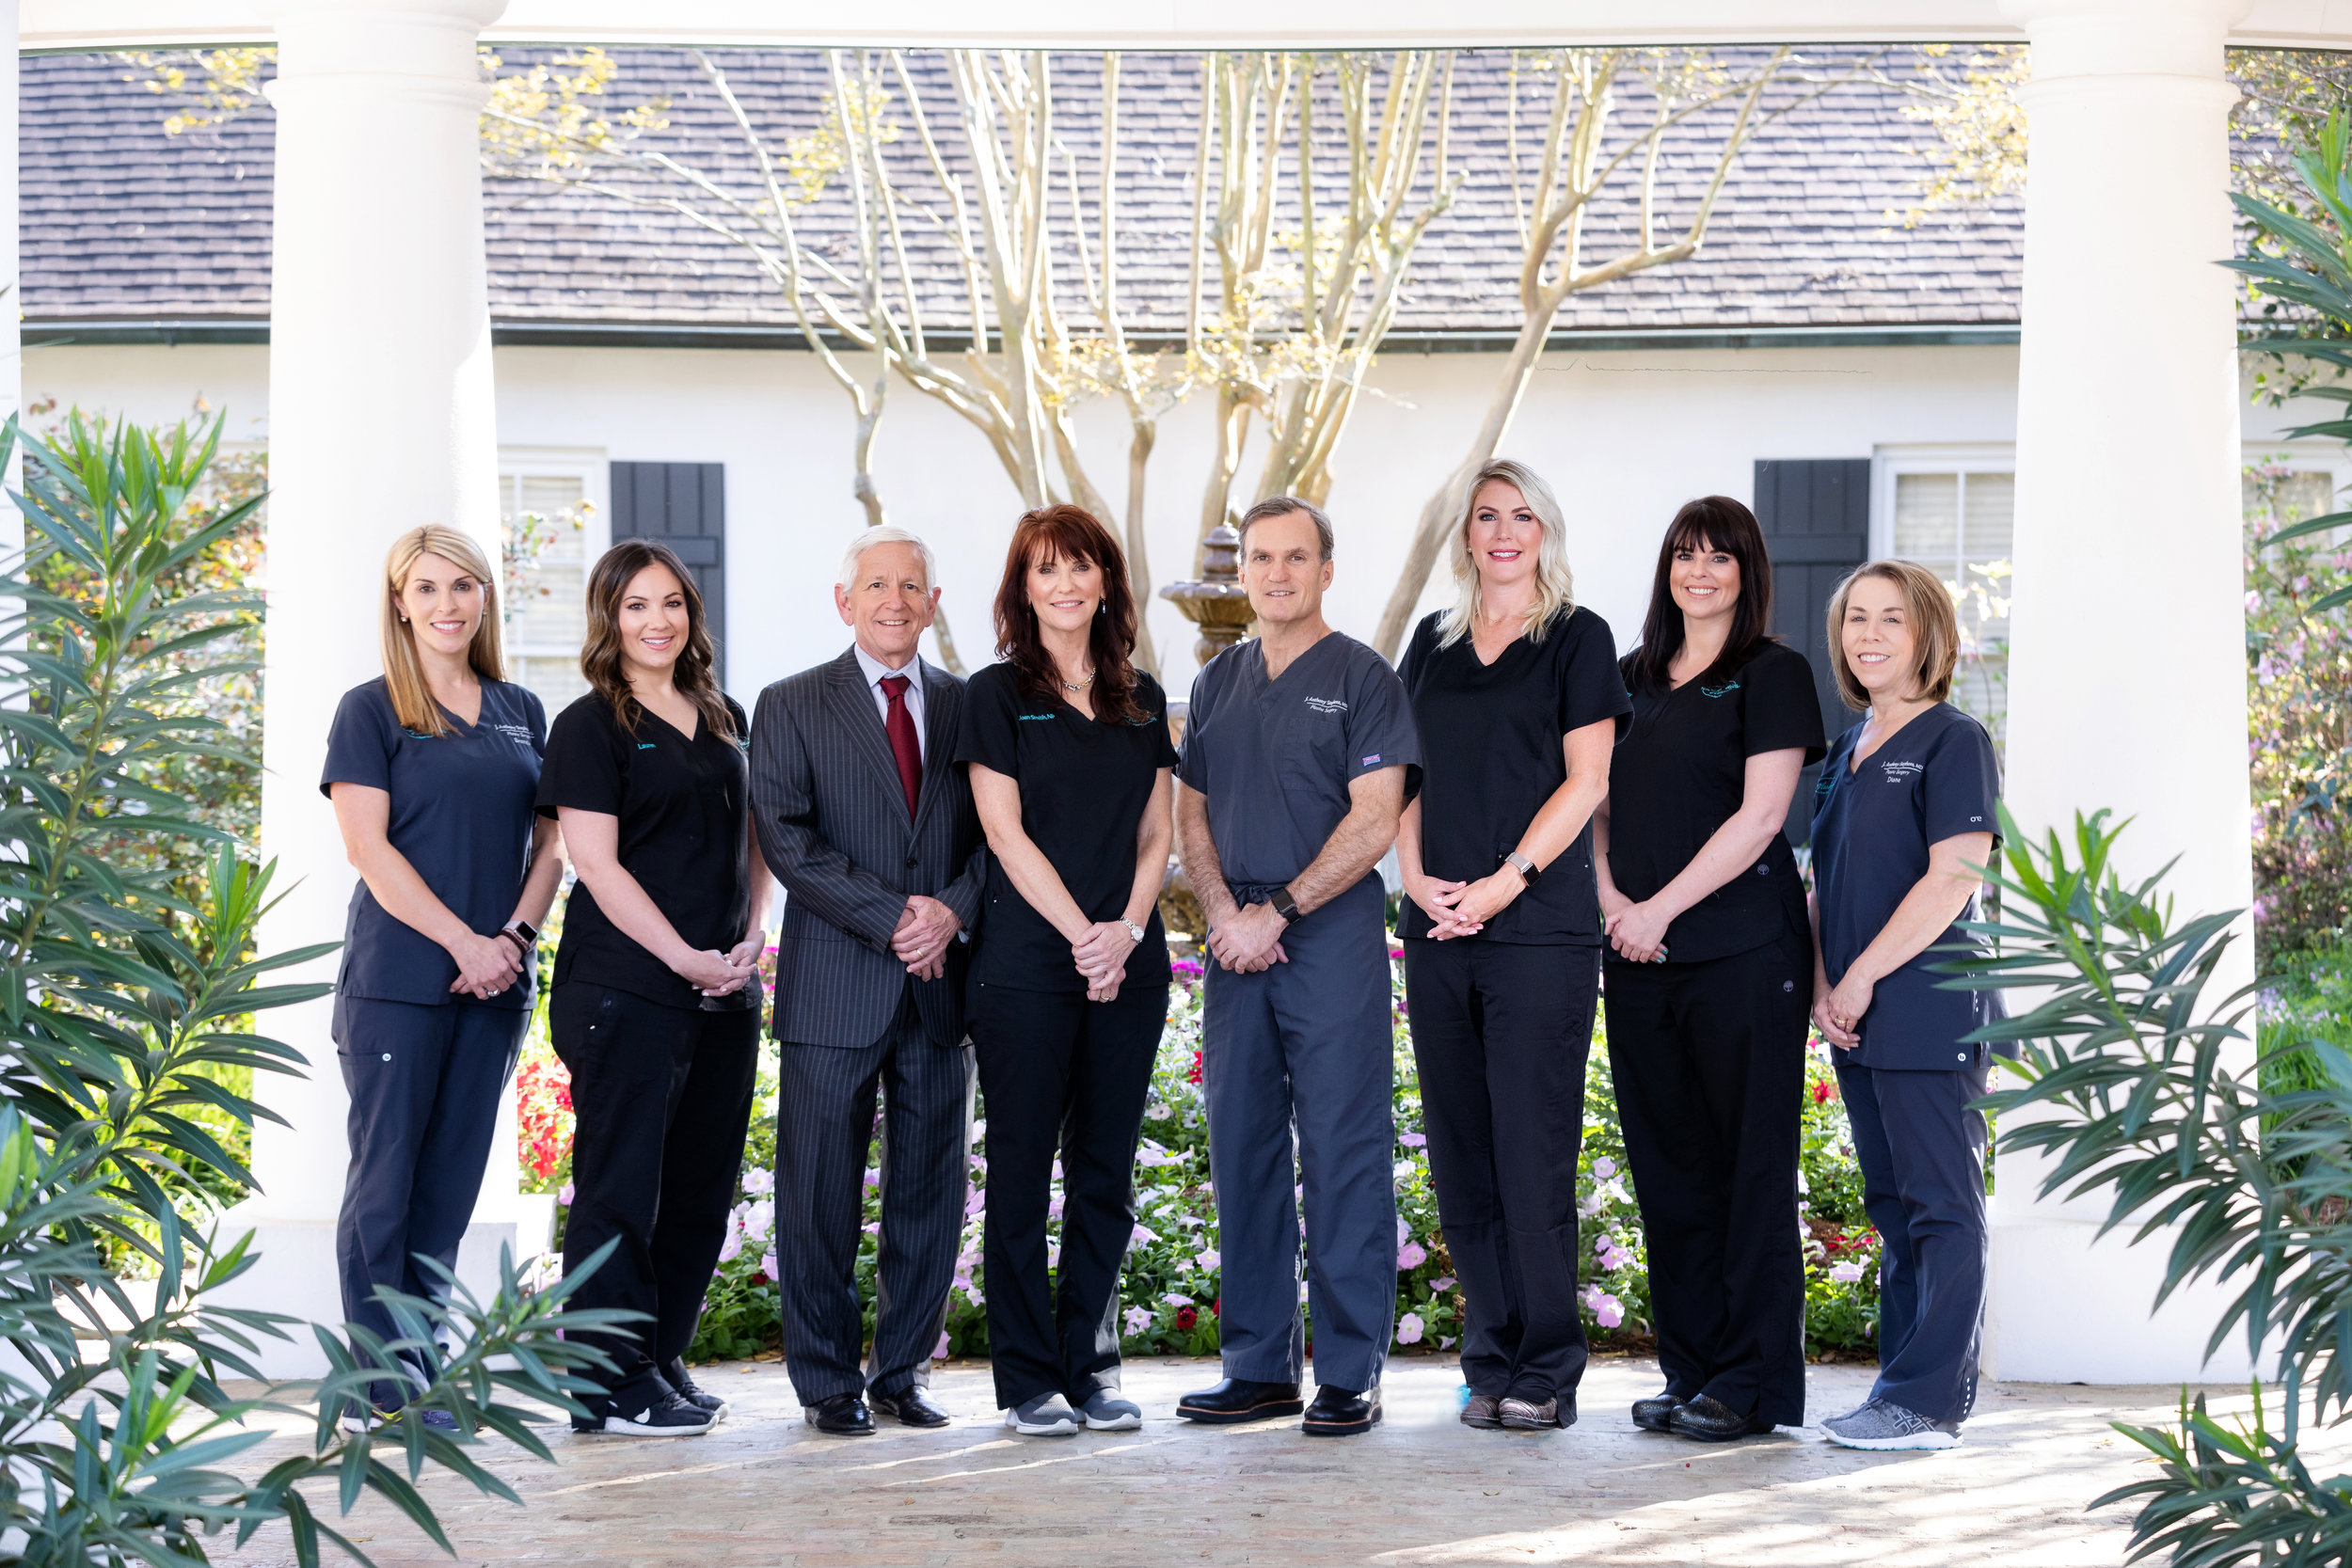 CERTIFIED AESTHETIC PROFESSIONALS - With us, you can breathe easy. All Skincare Aesthetics treatments are performed by licensed certified professionals with a deep understanding of anatomy and your custom needs.